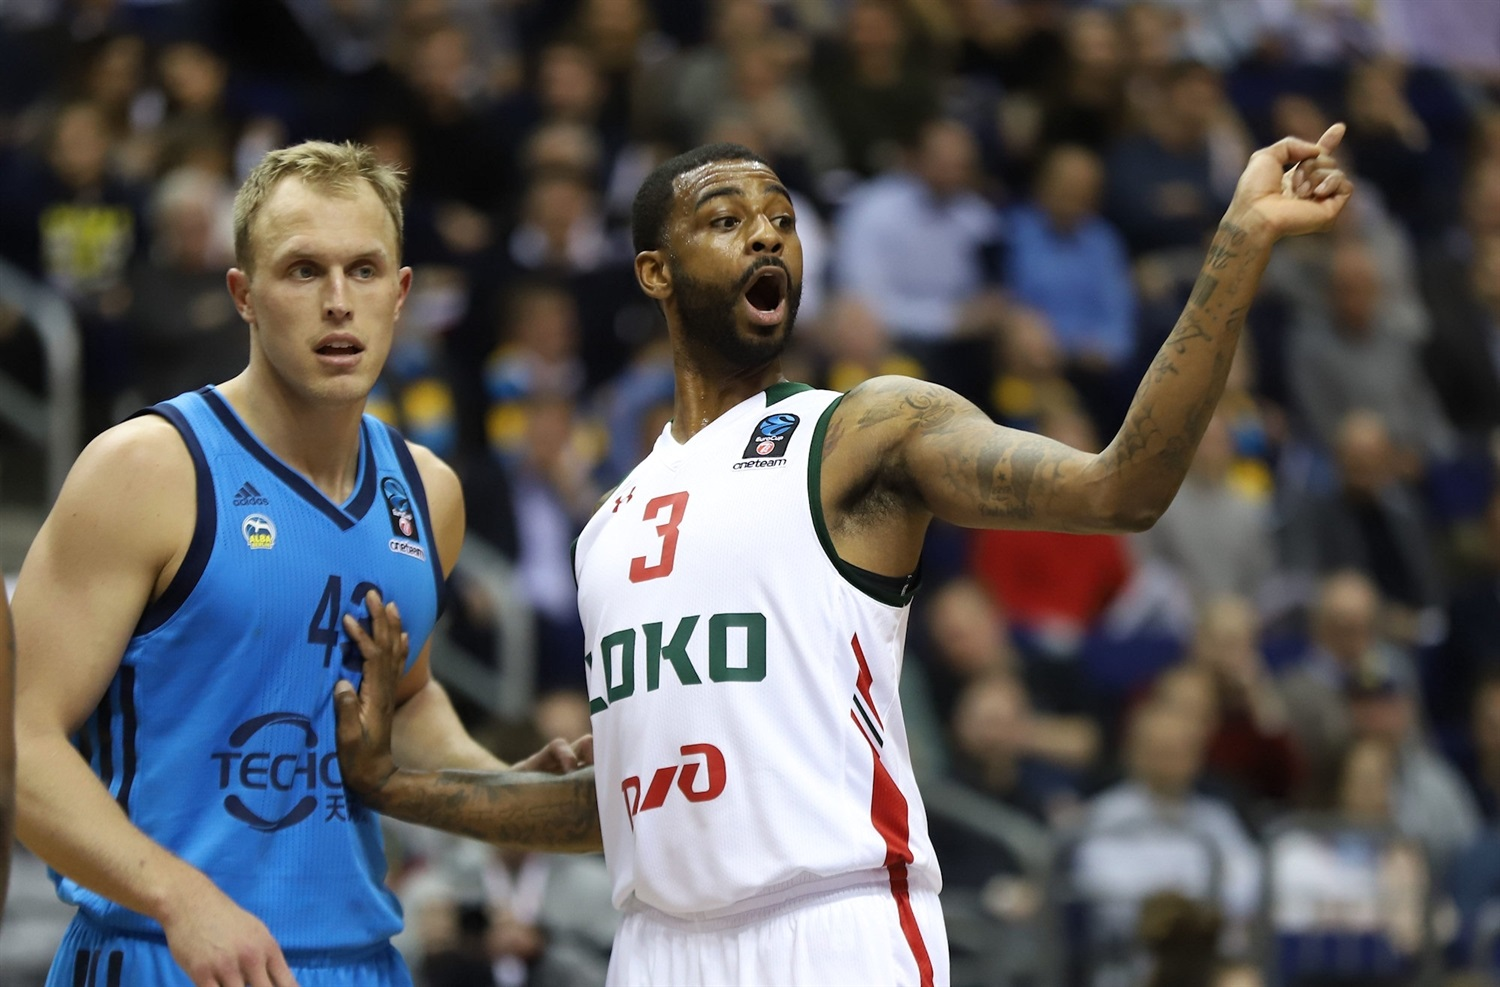 Dorell Wright - Lokomotiv Kuban Krasnodar (photo Andreas Knopf - ALBA) - EC18